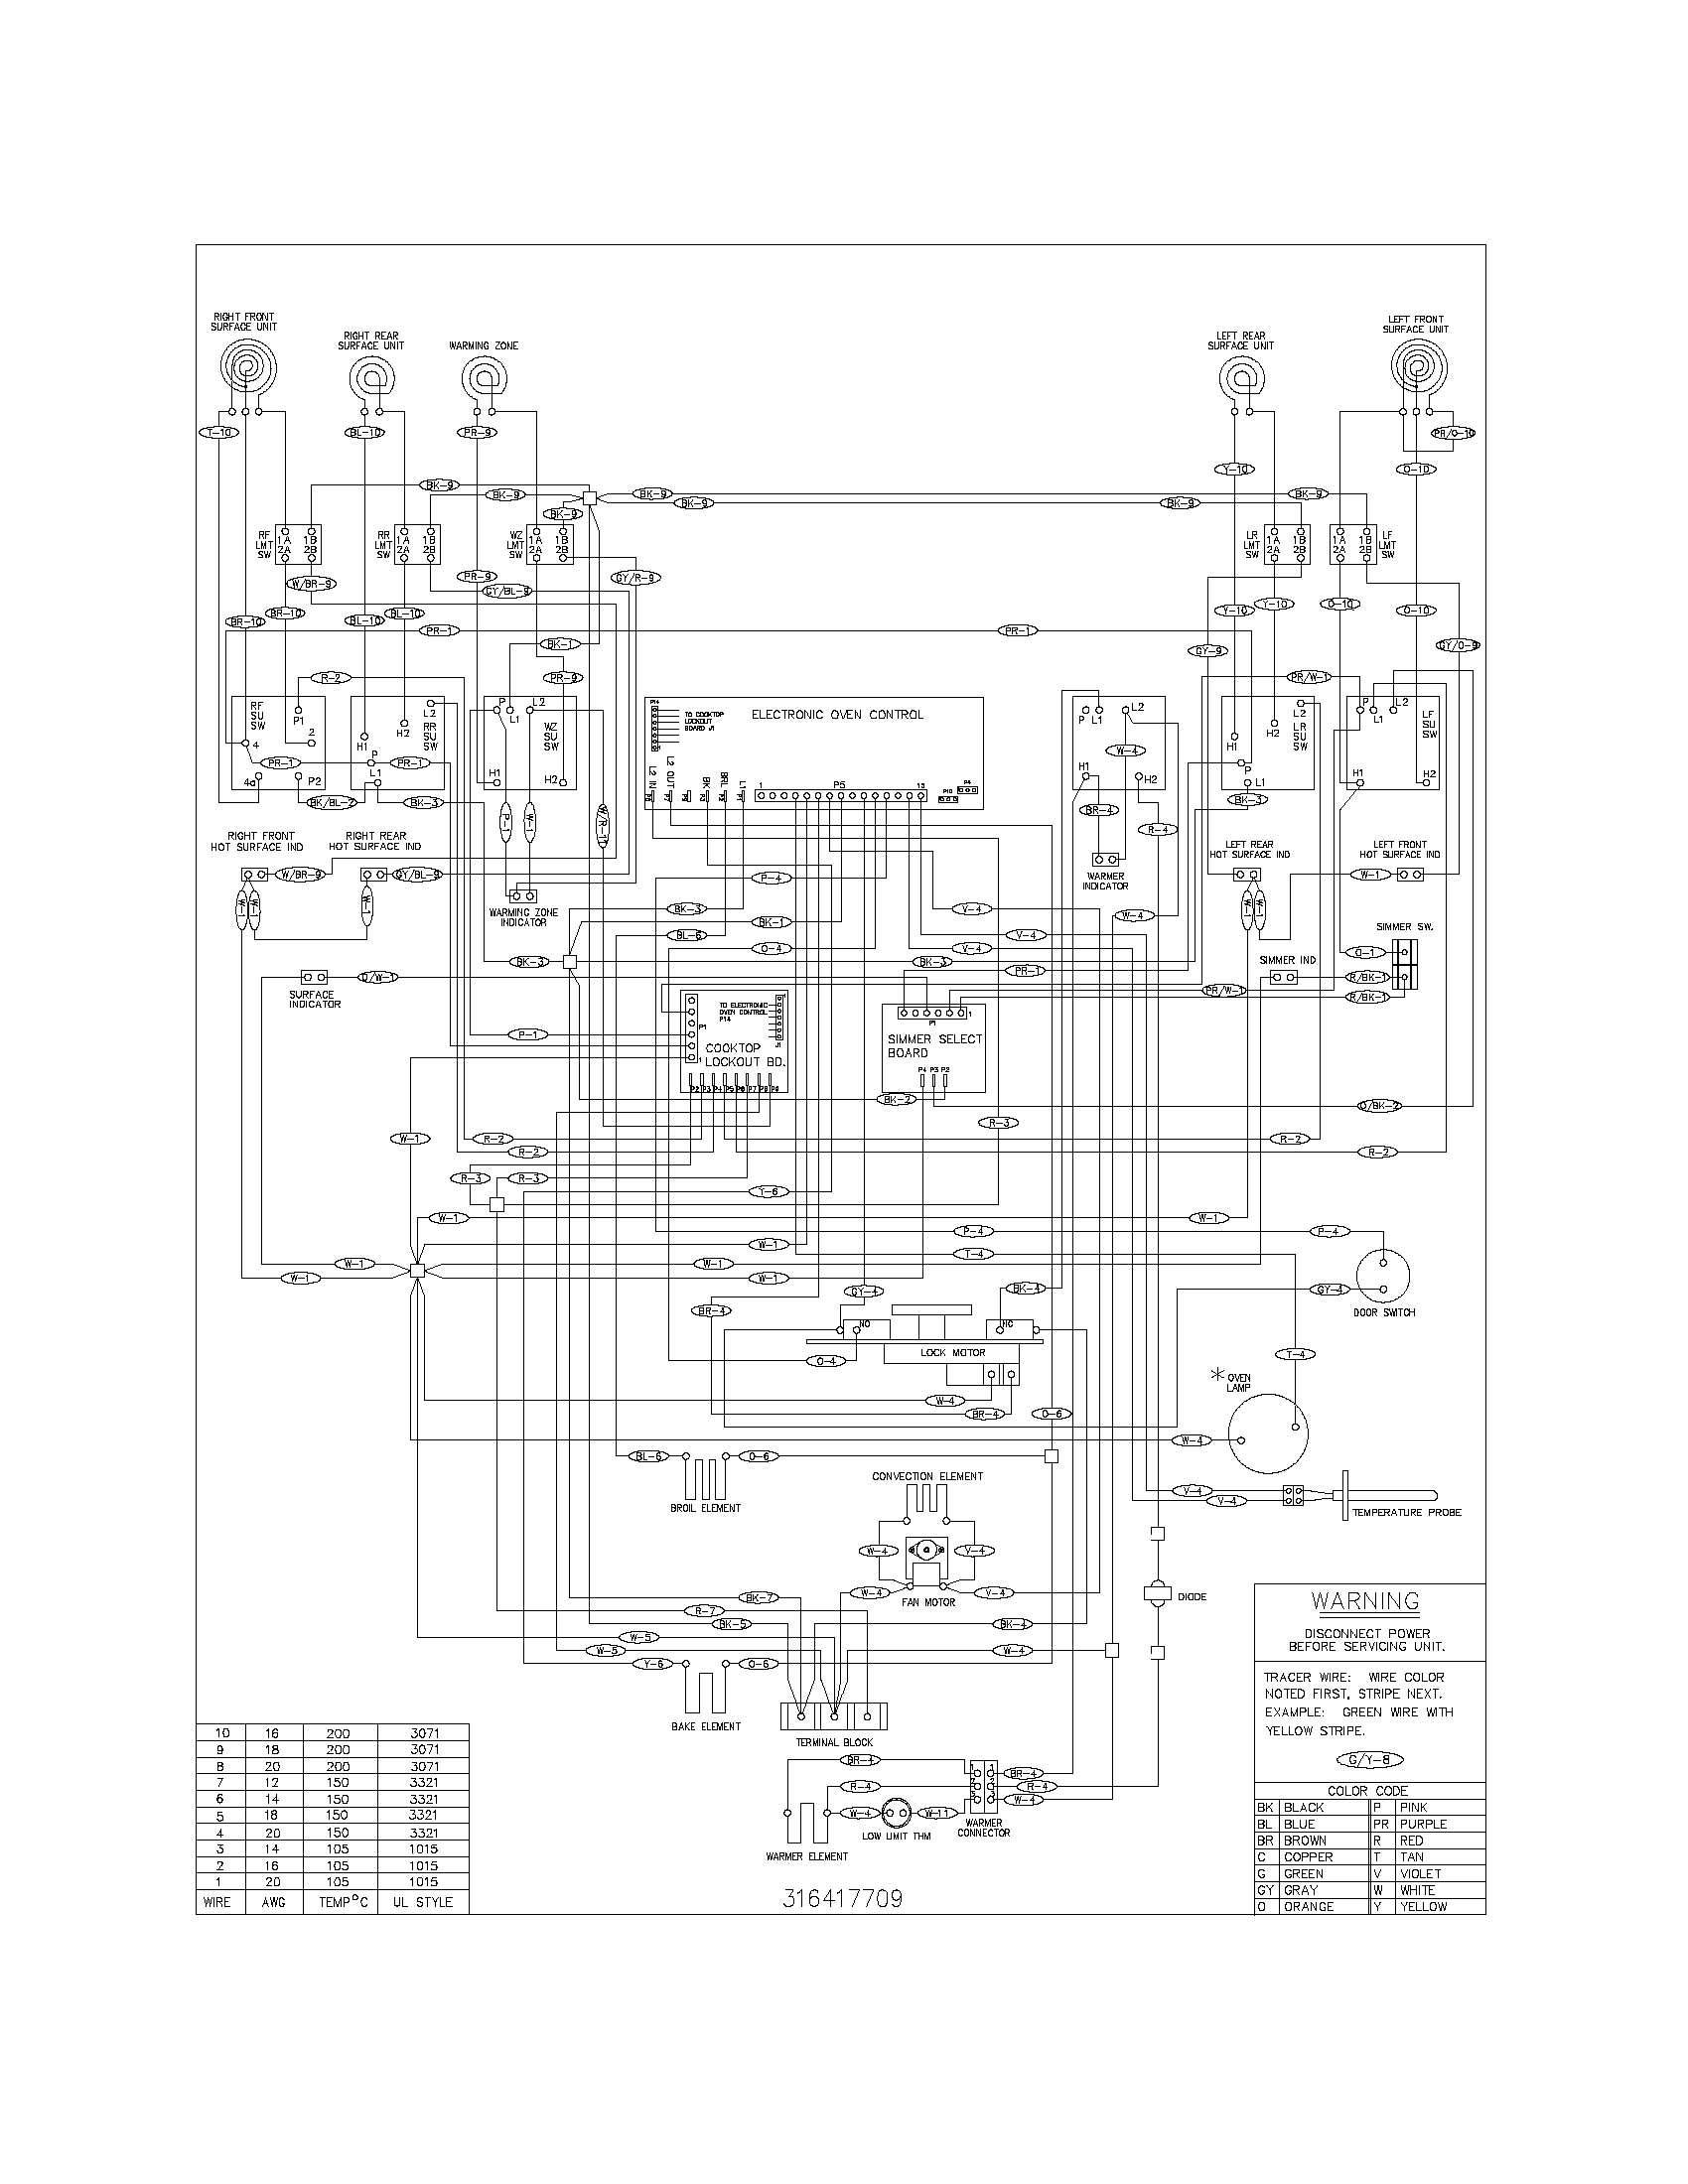 Cute Bluebird Alternator Wiring Schematics Fender Tele Wiring Diagram